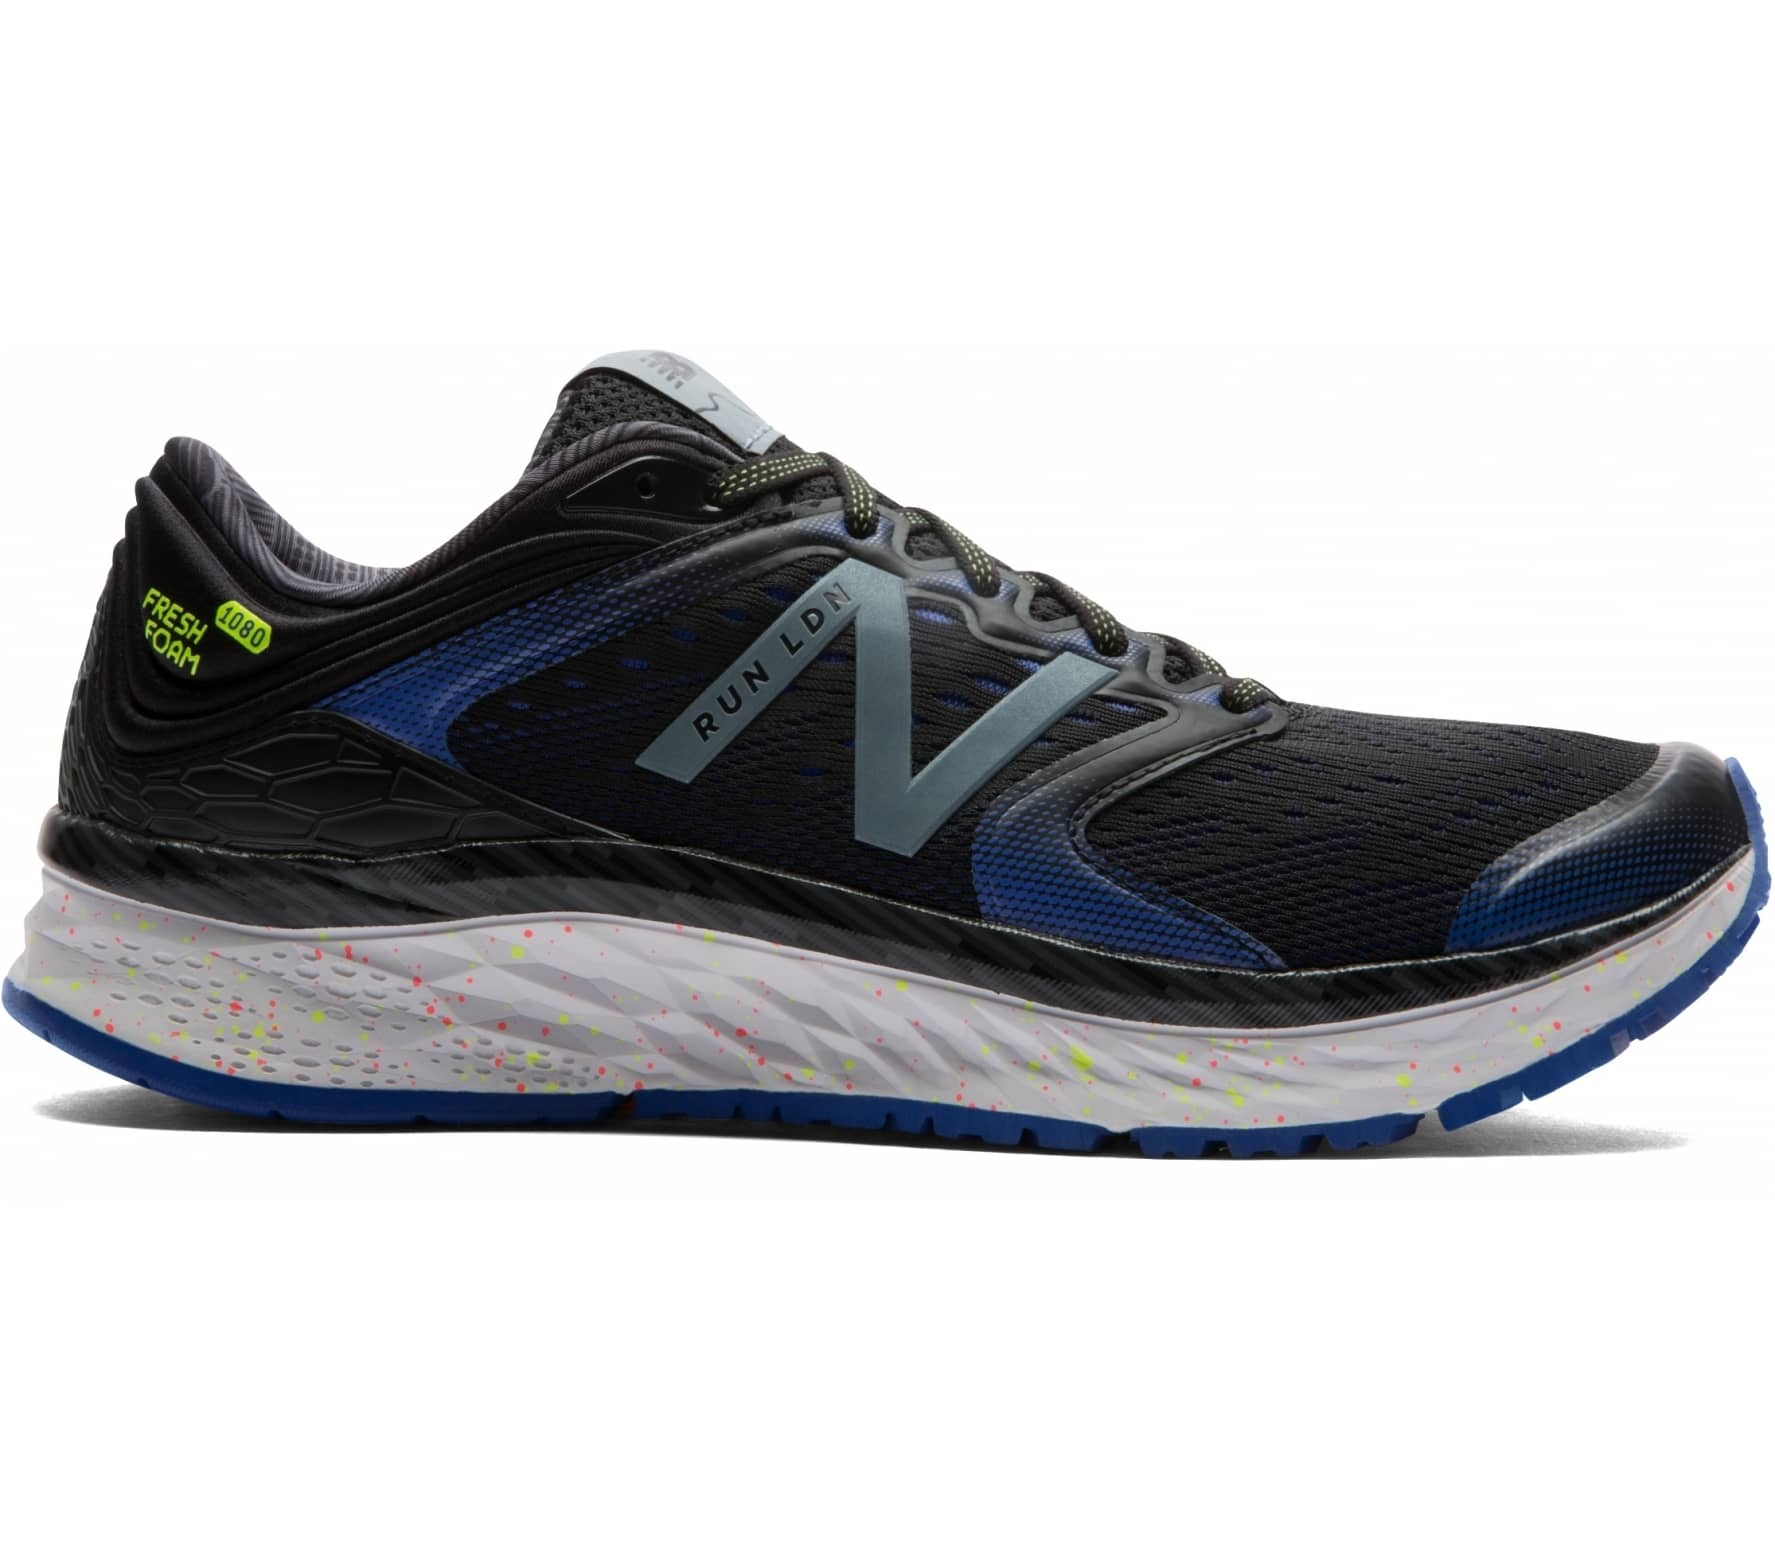 Where Can I Buy New Balance Shoes In London